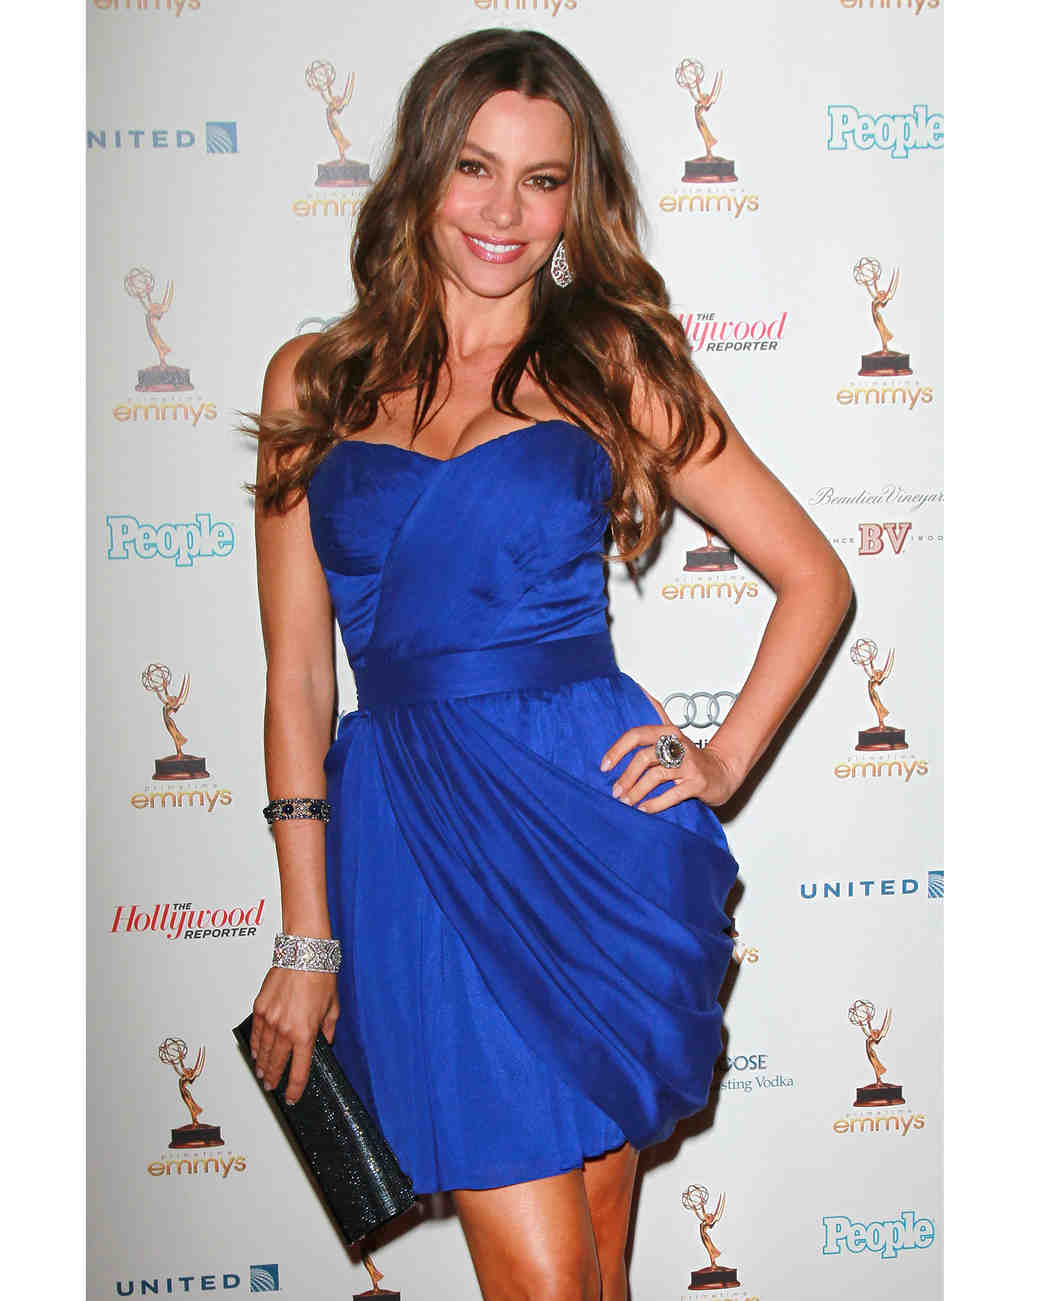 sofia-vergara-red-carpet-emmys-royal-blue-short-dress-0815.jpg